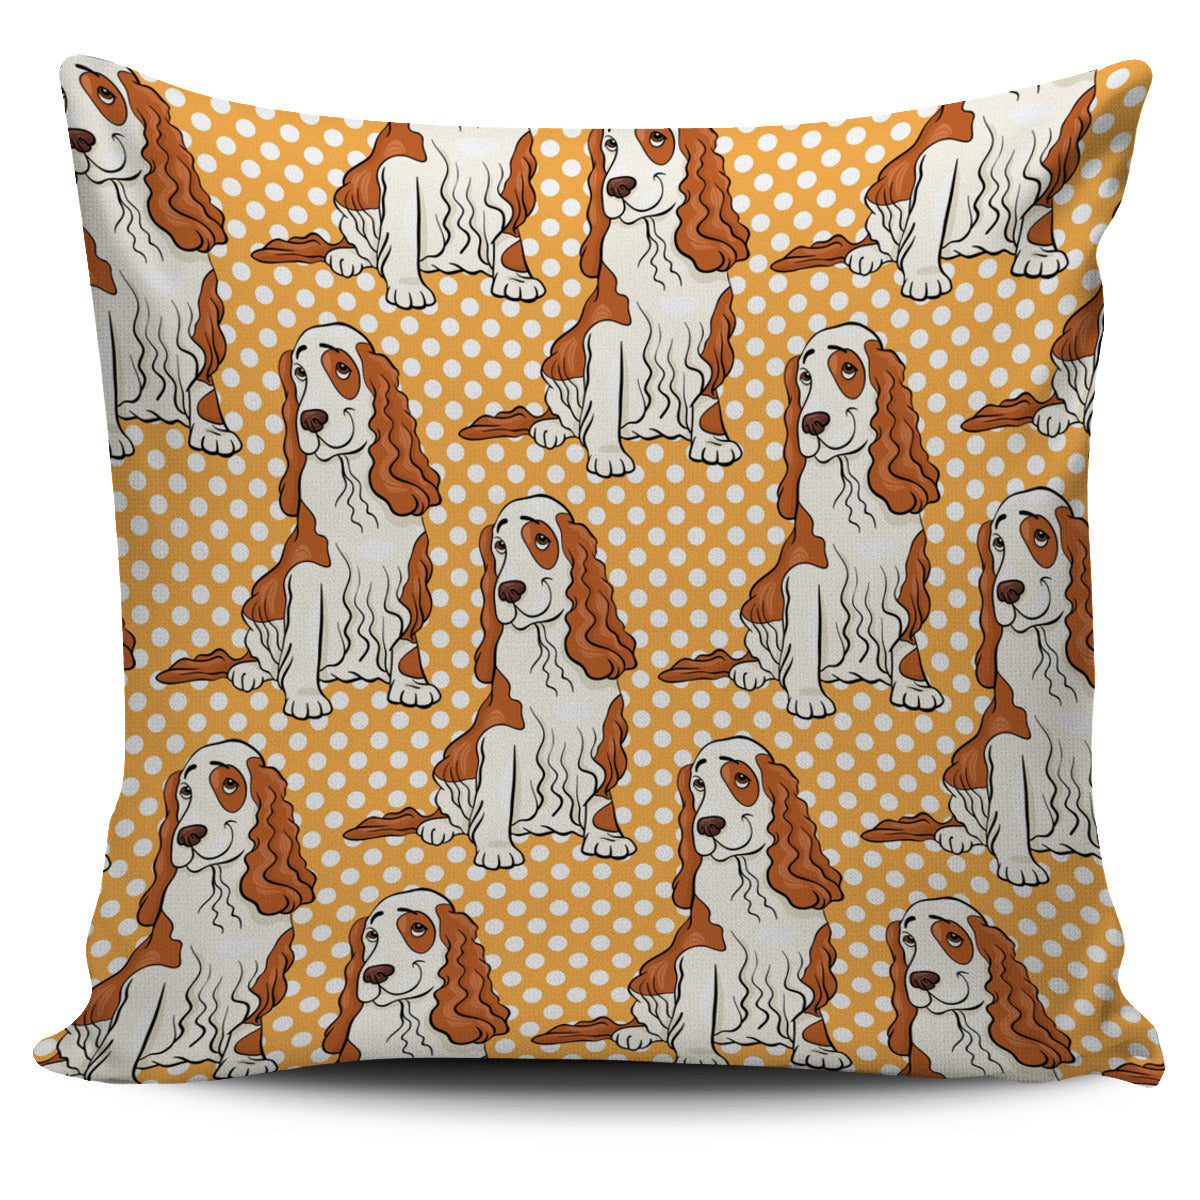 Smile Cocker Spaniel 3d Polka Dots Little Dog Pillow Covers Shop For